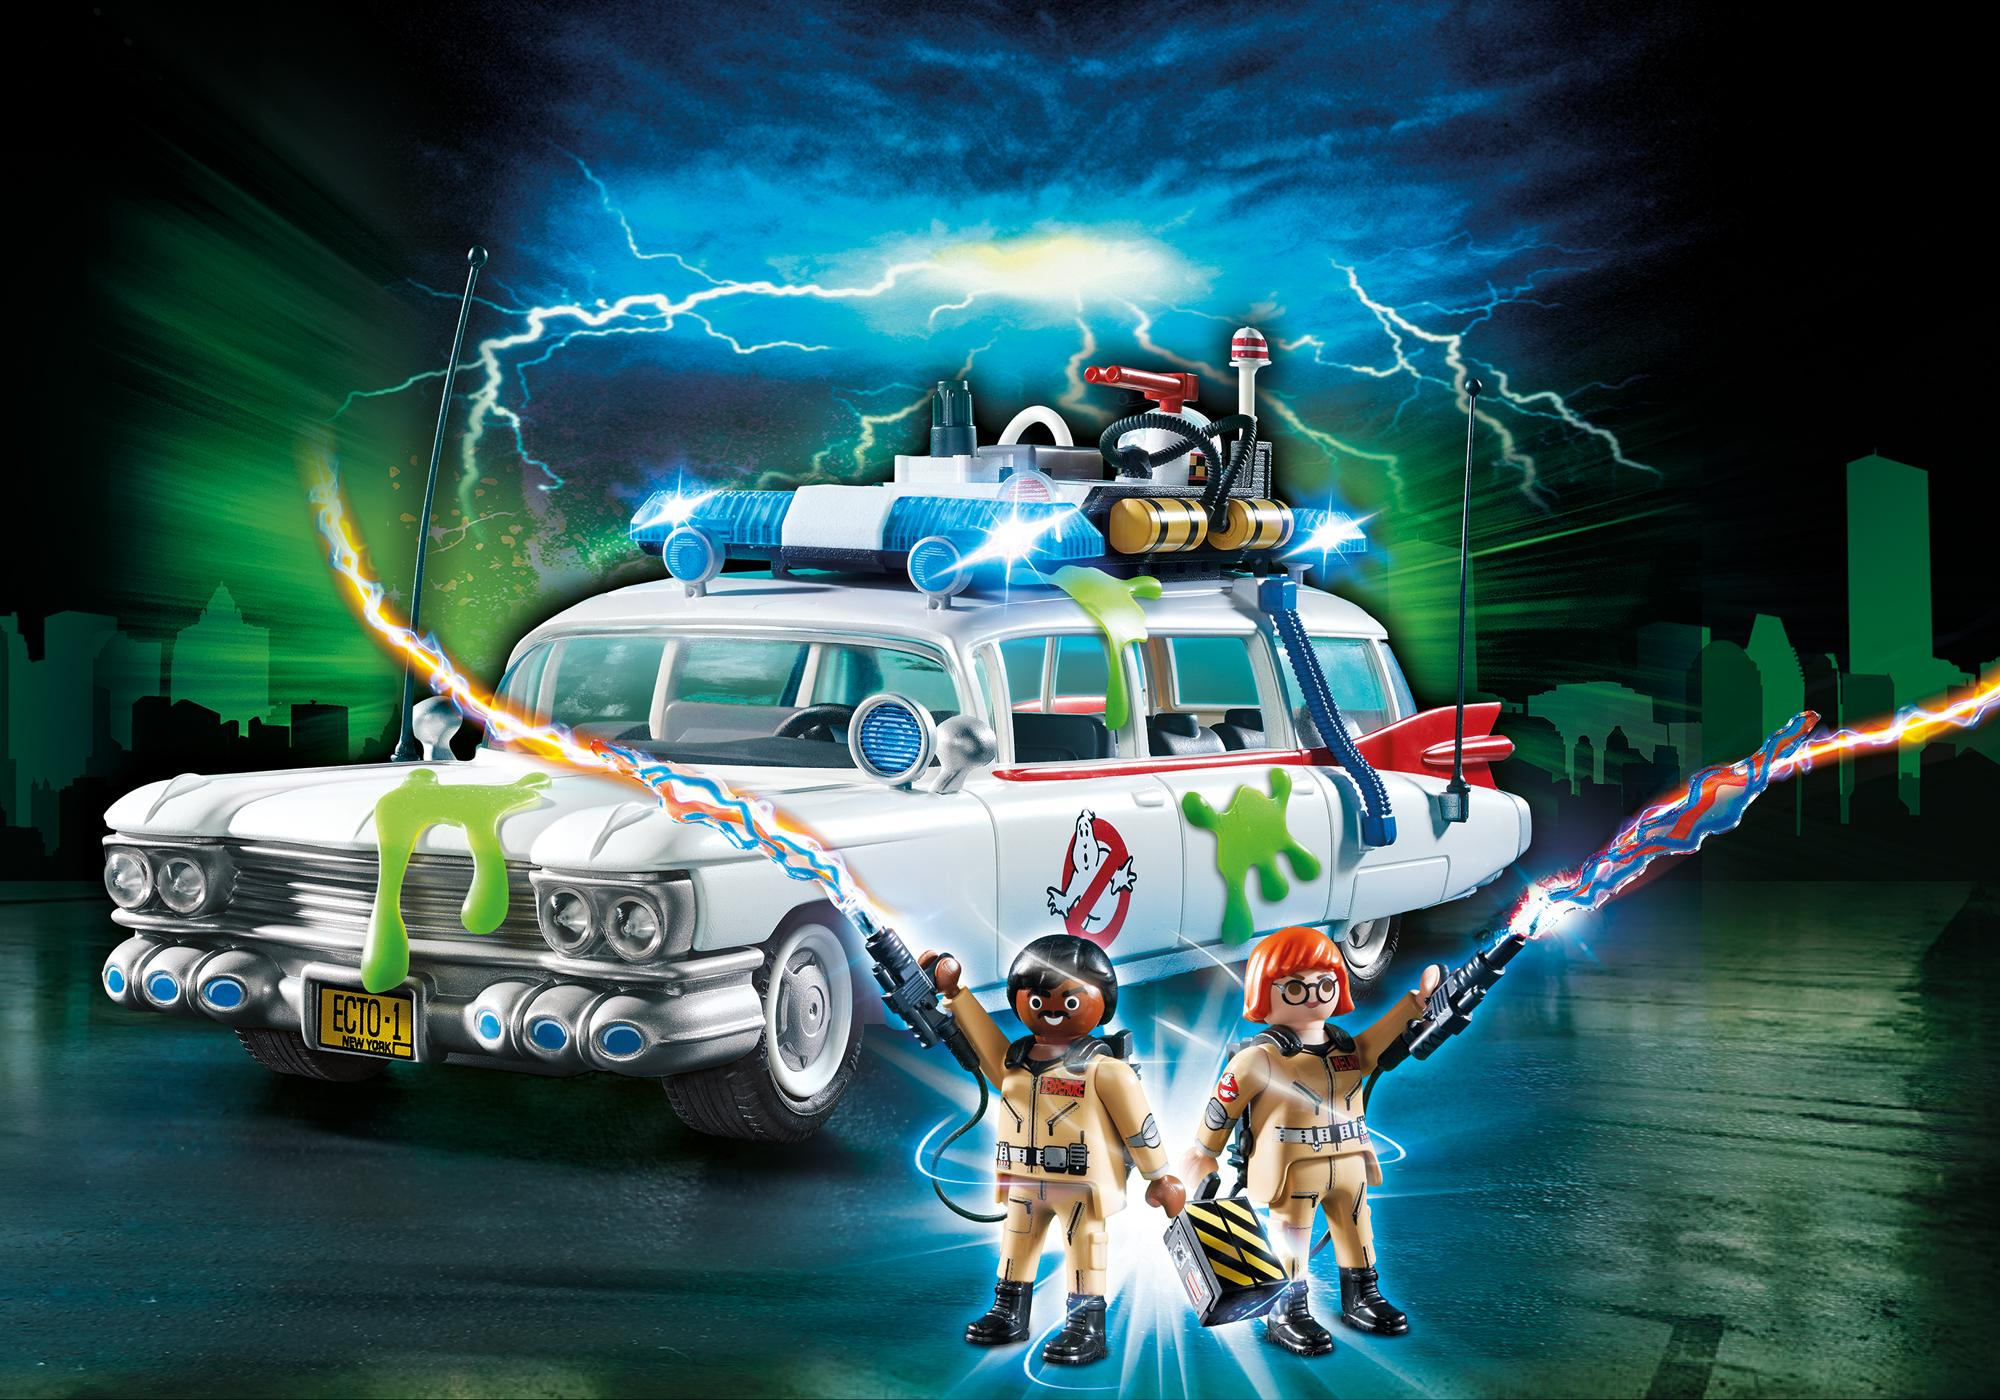 9220_product_detail/VEHICUL ECTO-1 GHOSTBUSTER